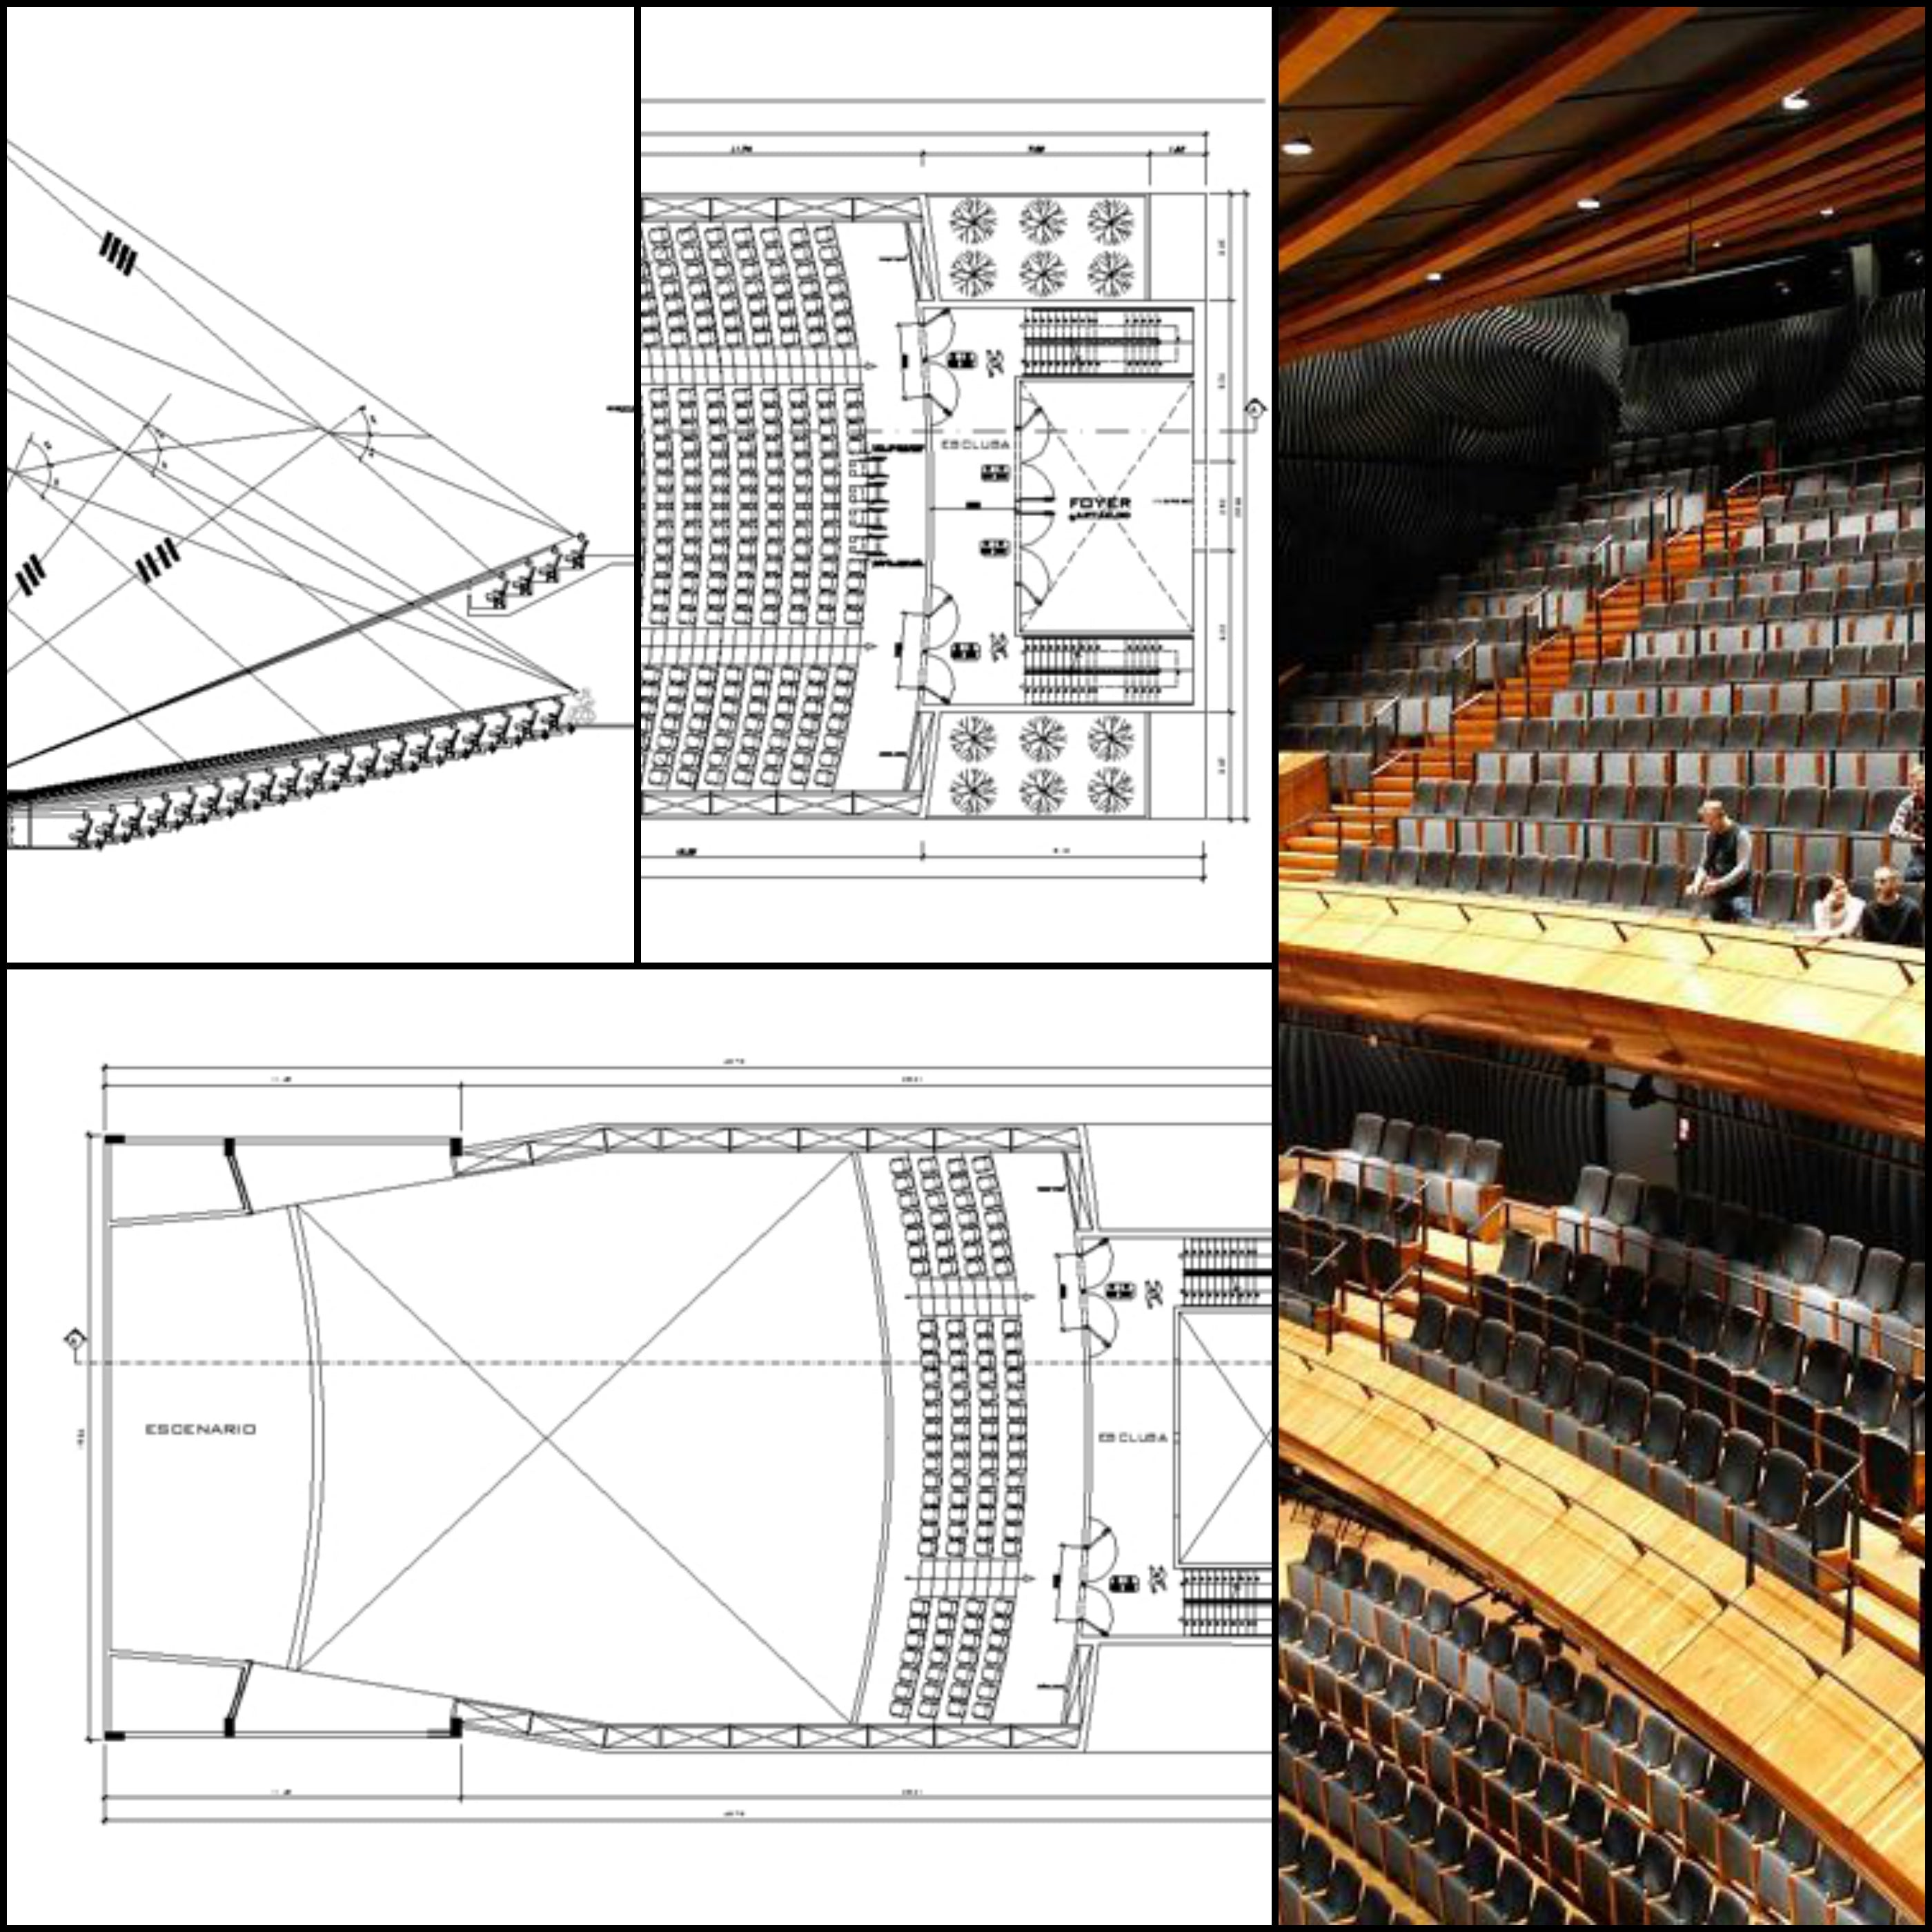 ★【Auditorium CAD Details V.2】@Auditorium Design,Autocad Blocks,AuditoriumDetails,Auditorium Section,Auditorium elevation design drawings